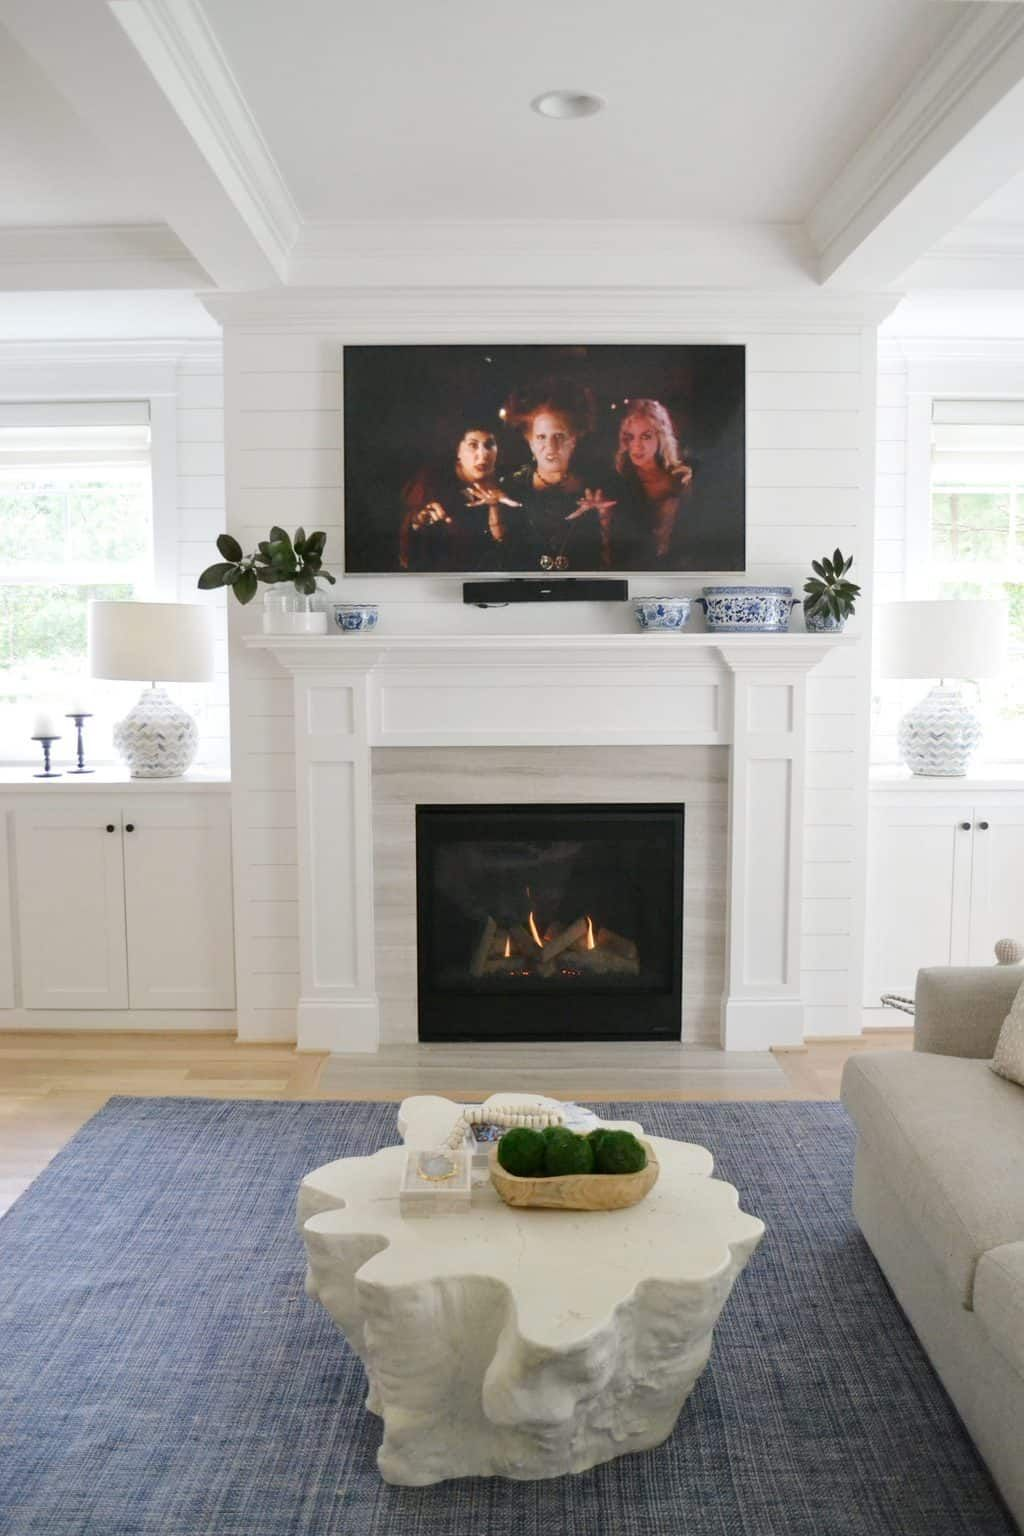 Mantel Decor With A Tv 6 Ways To Pull It Off In 2021 Blue And Green Living Room Home Living Room Green